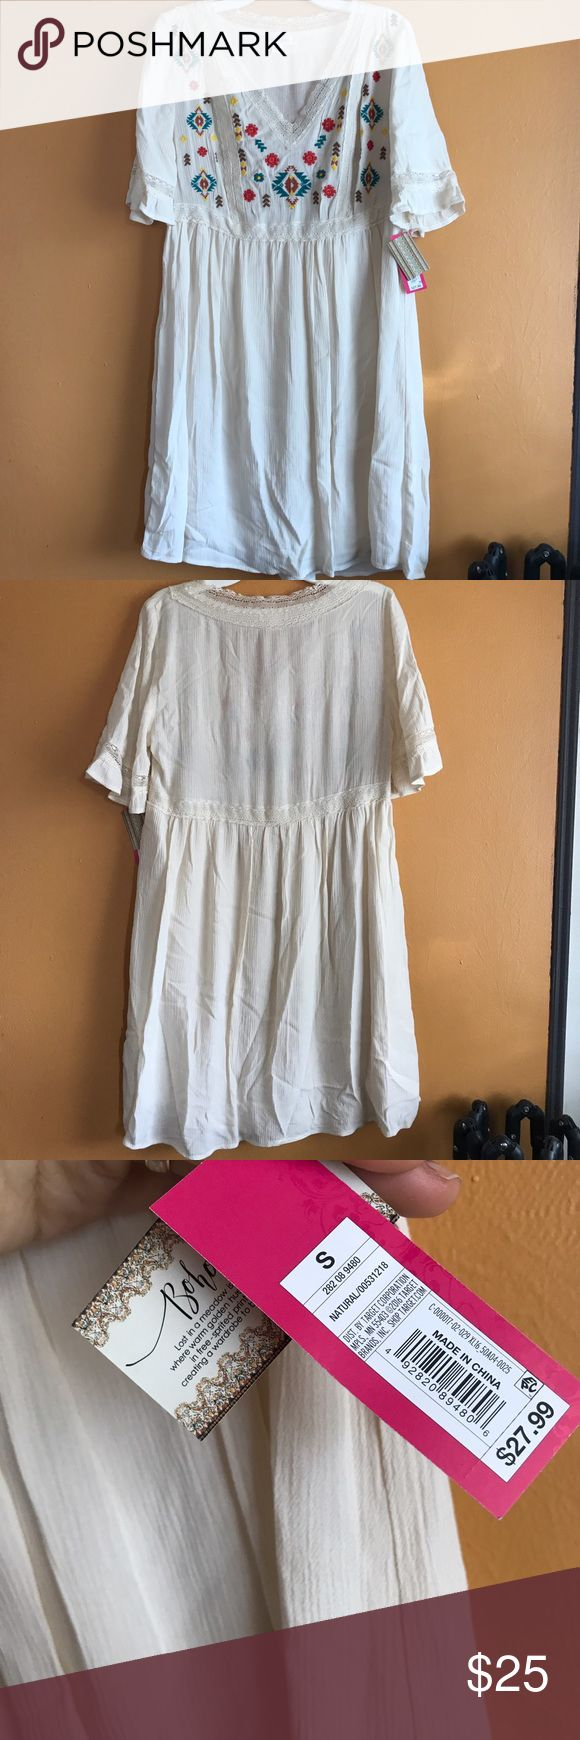 Brand new boho embroidered summer dress Brand new knee length embroidered Mexican style summer dress. Gauze crinkle soft fabric. Light and flowy. Bohemian boho chic look. Perfect for festival wear or the beach. Super cute with tan ankle boots. Cream, natural color. Mossimo Supply Co. Dresses